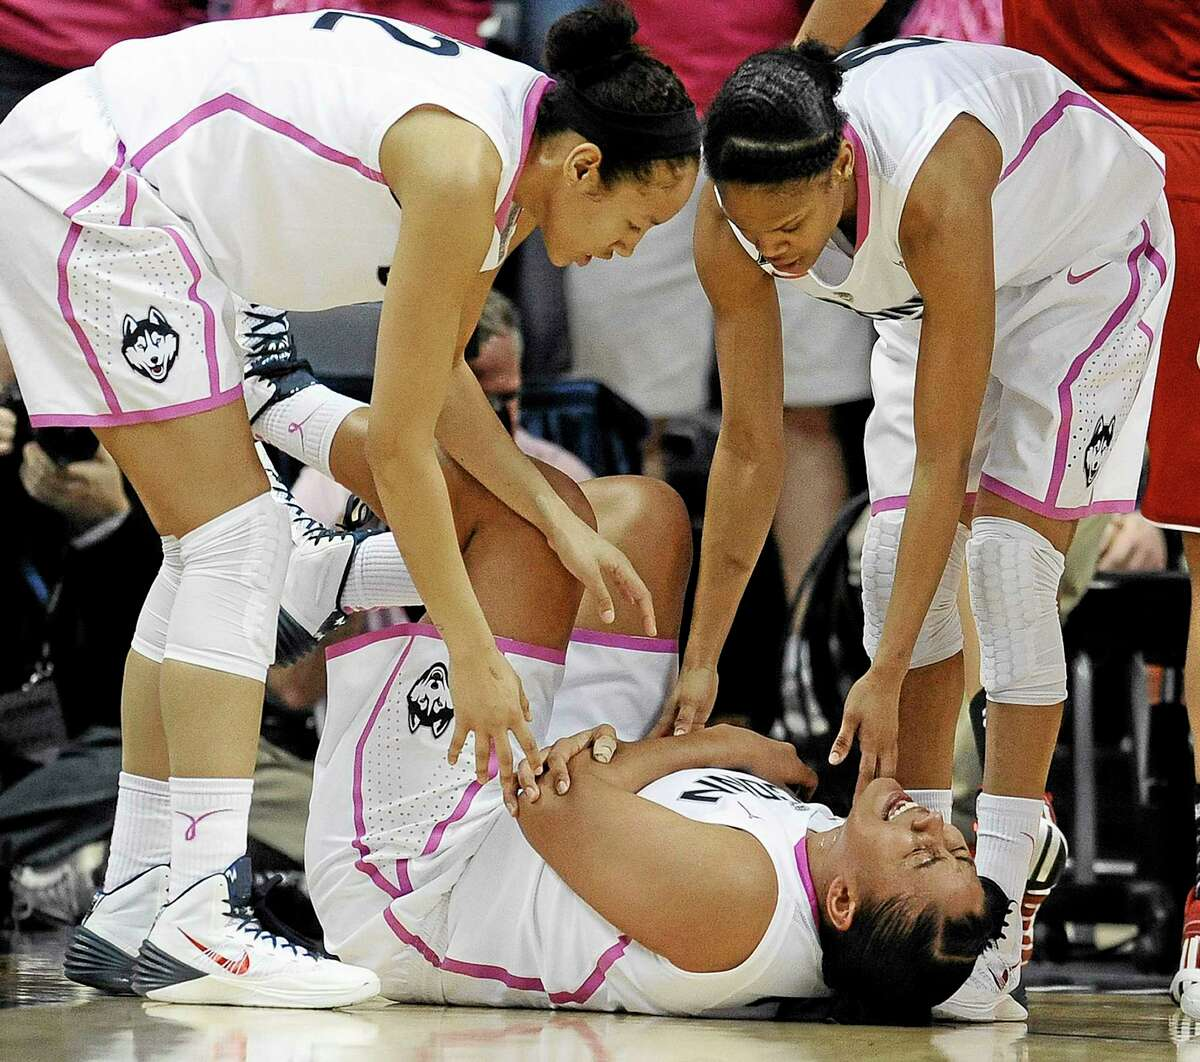 UConn's Kaleena Mosqueda-Lewis holds her arm after a hard fall to the court as teammates Saniya Chong, left, and Moriah Jefferson, right, look over her during Sunday's game. The Huskies learned Friday that Mosqueda-Lewis will miss the next 3-6 weeks due to mononucleosis.